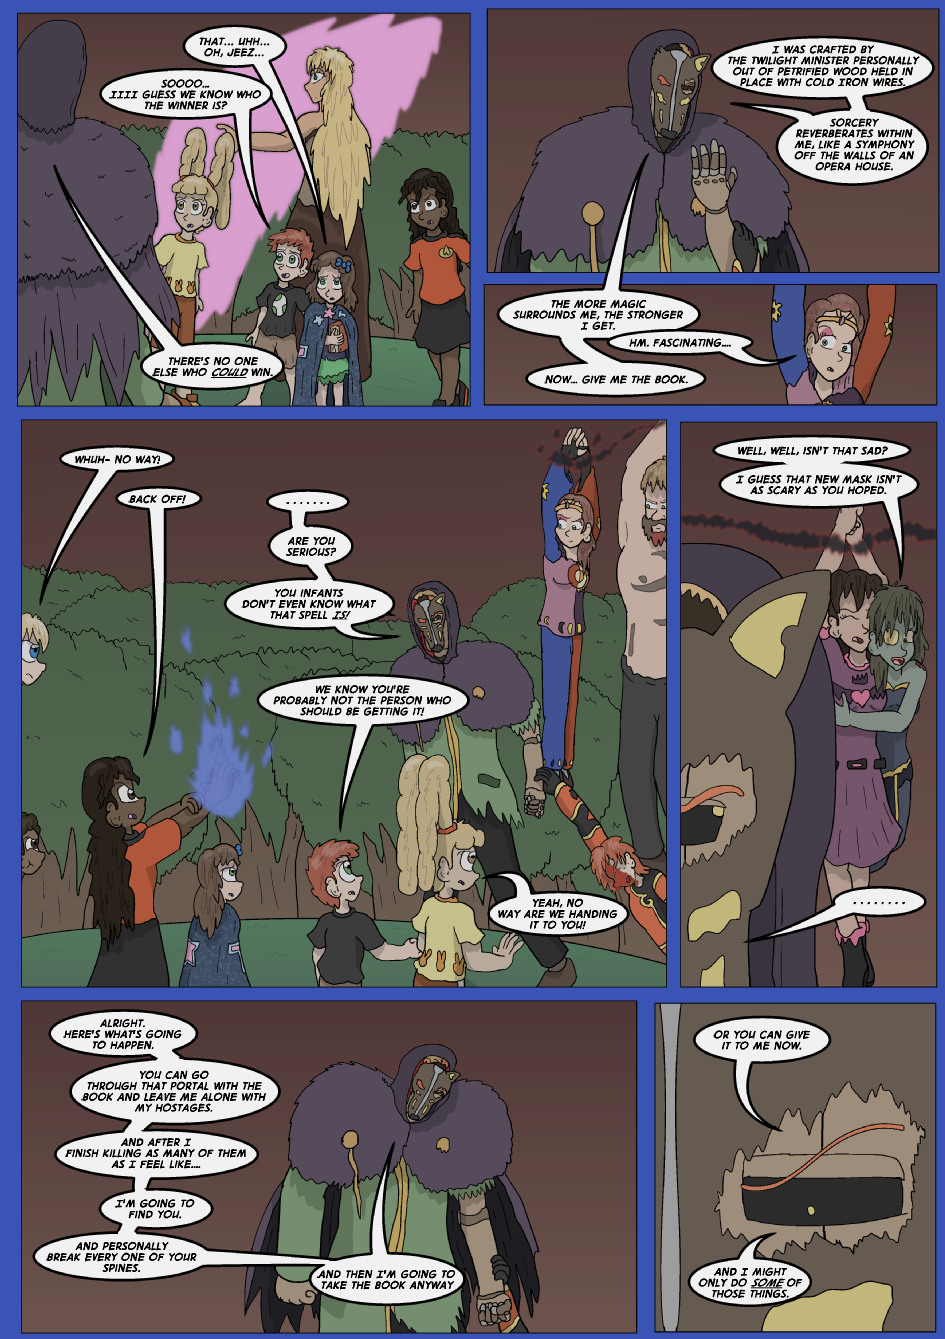 The Lost Spell of Baron Fontainebleu, Page 26